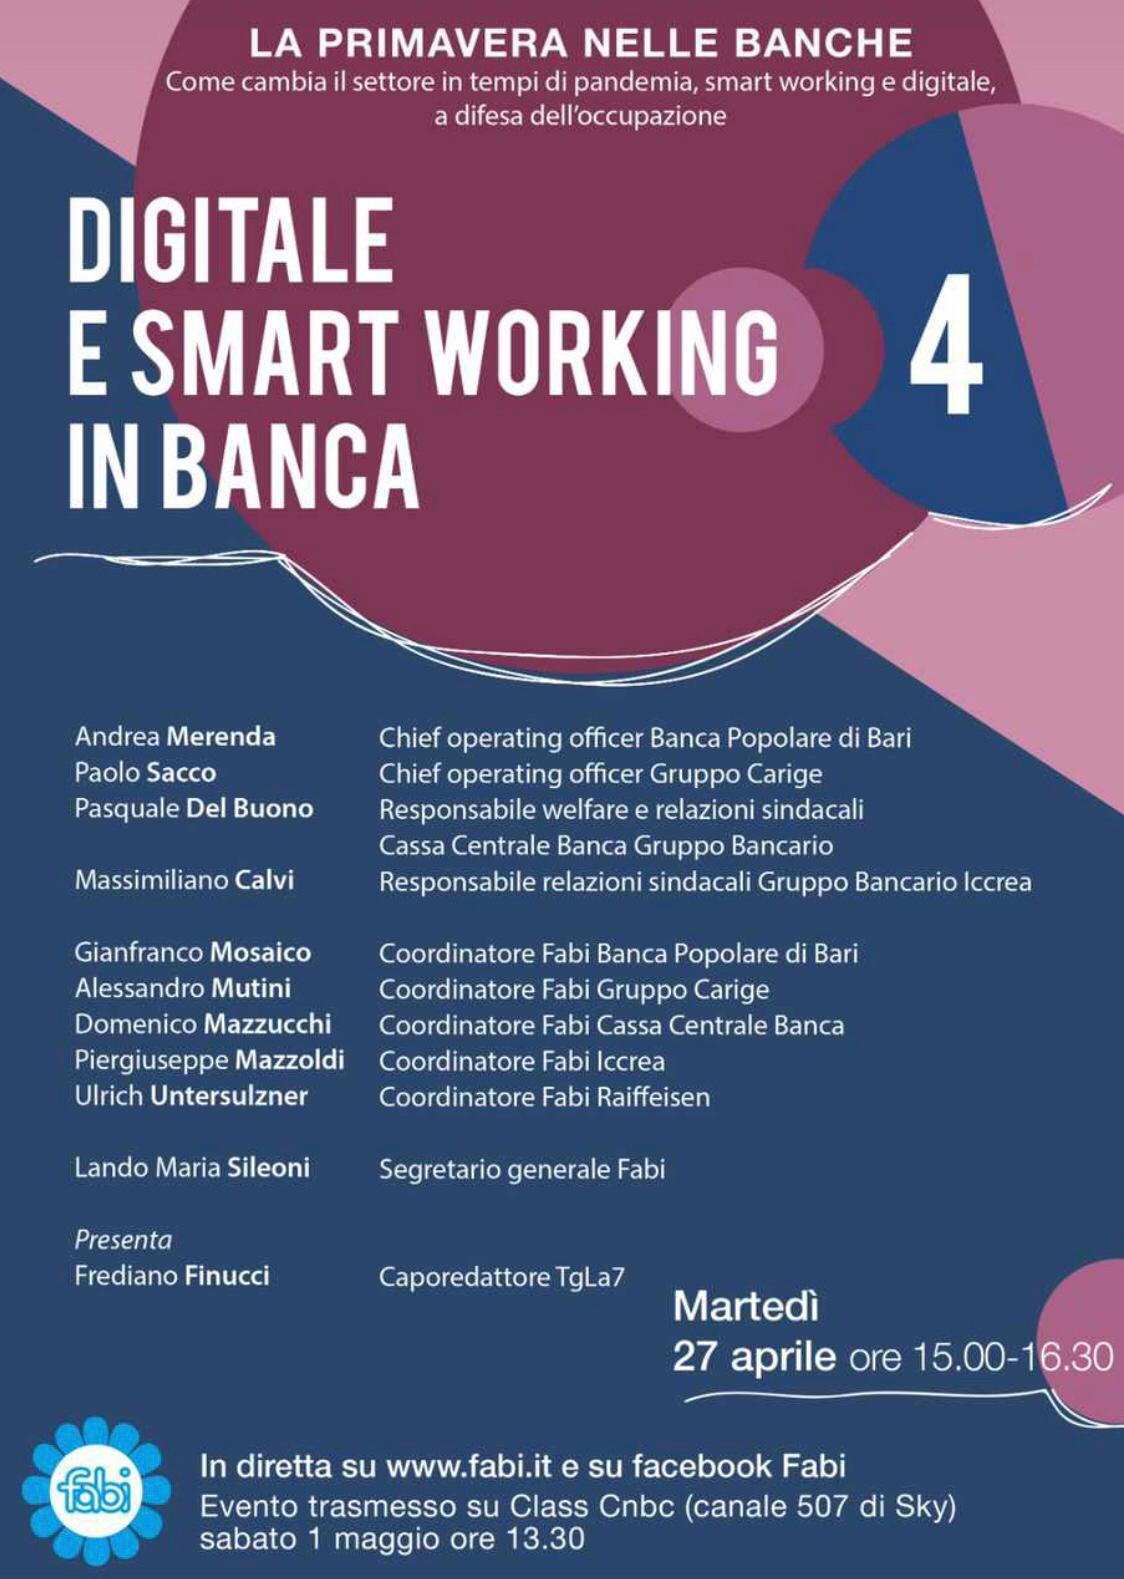 CONTINUA DIGITALE E SMART WORKING, SINDACATI E BANCHE A CONFRONTO